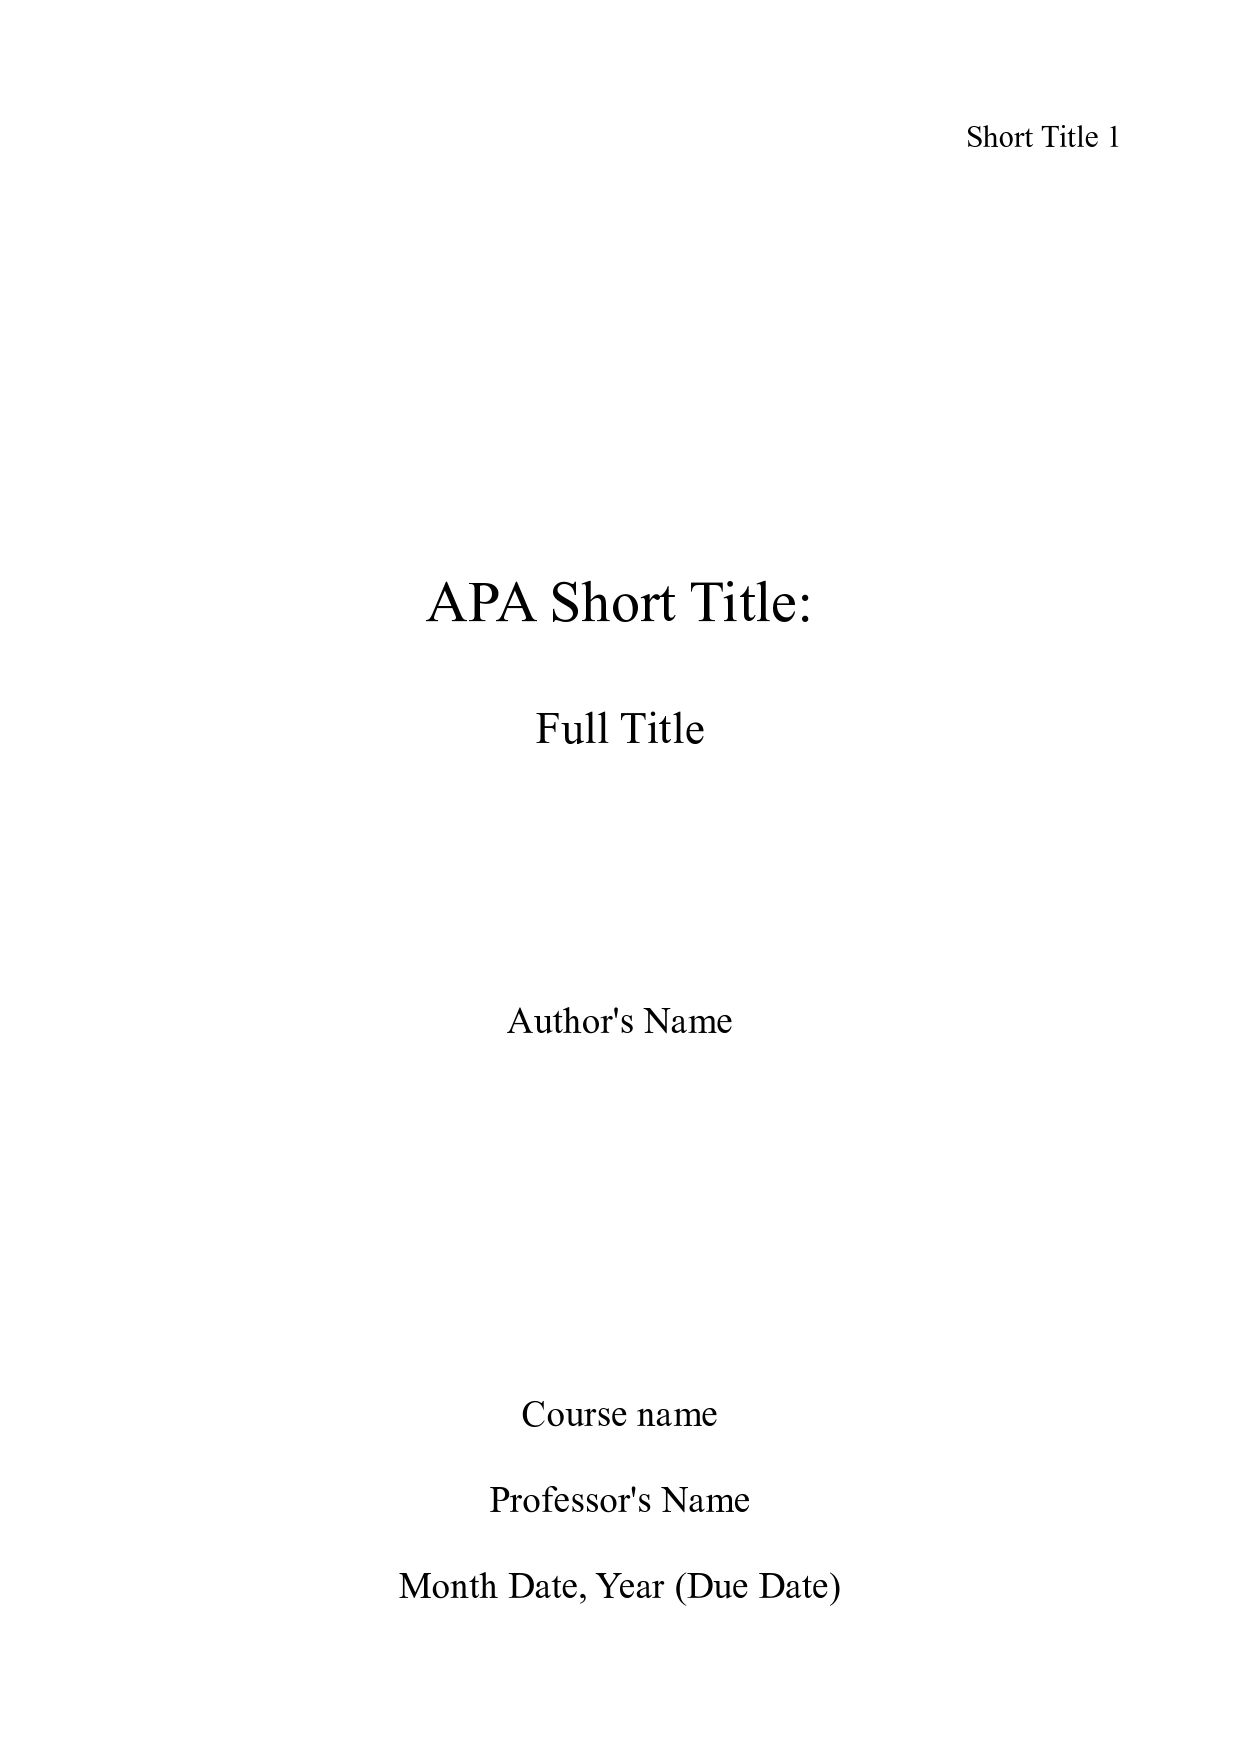 004 Research Paper Cover Page Rare For Chicago Style How To Write A Apa Reference Full